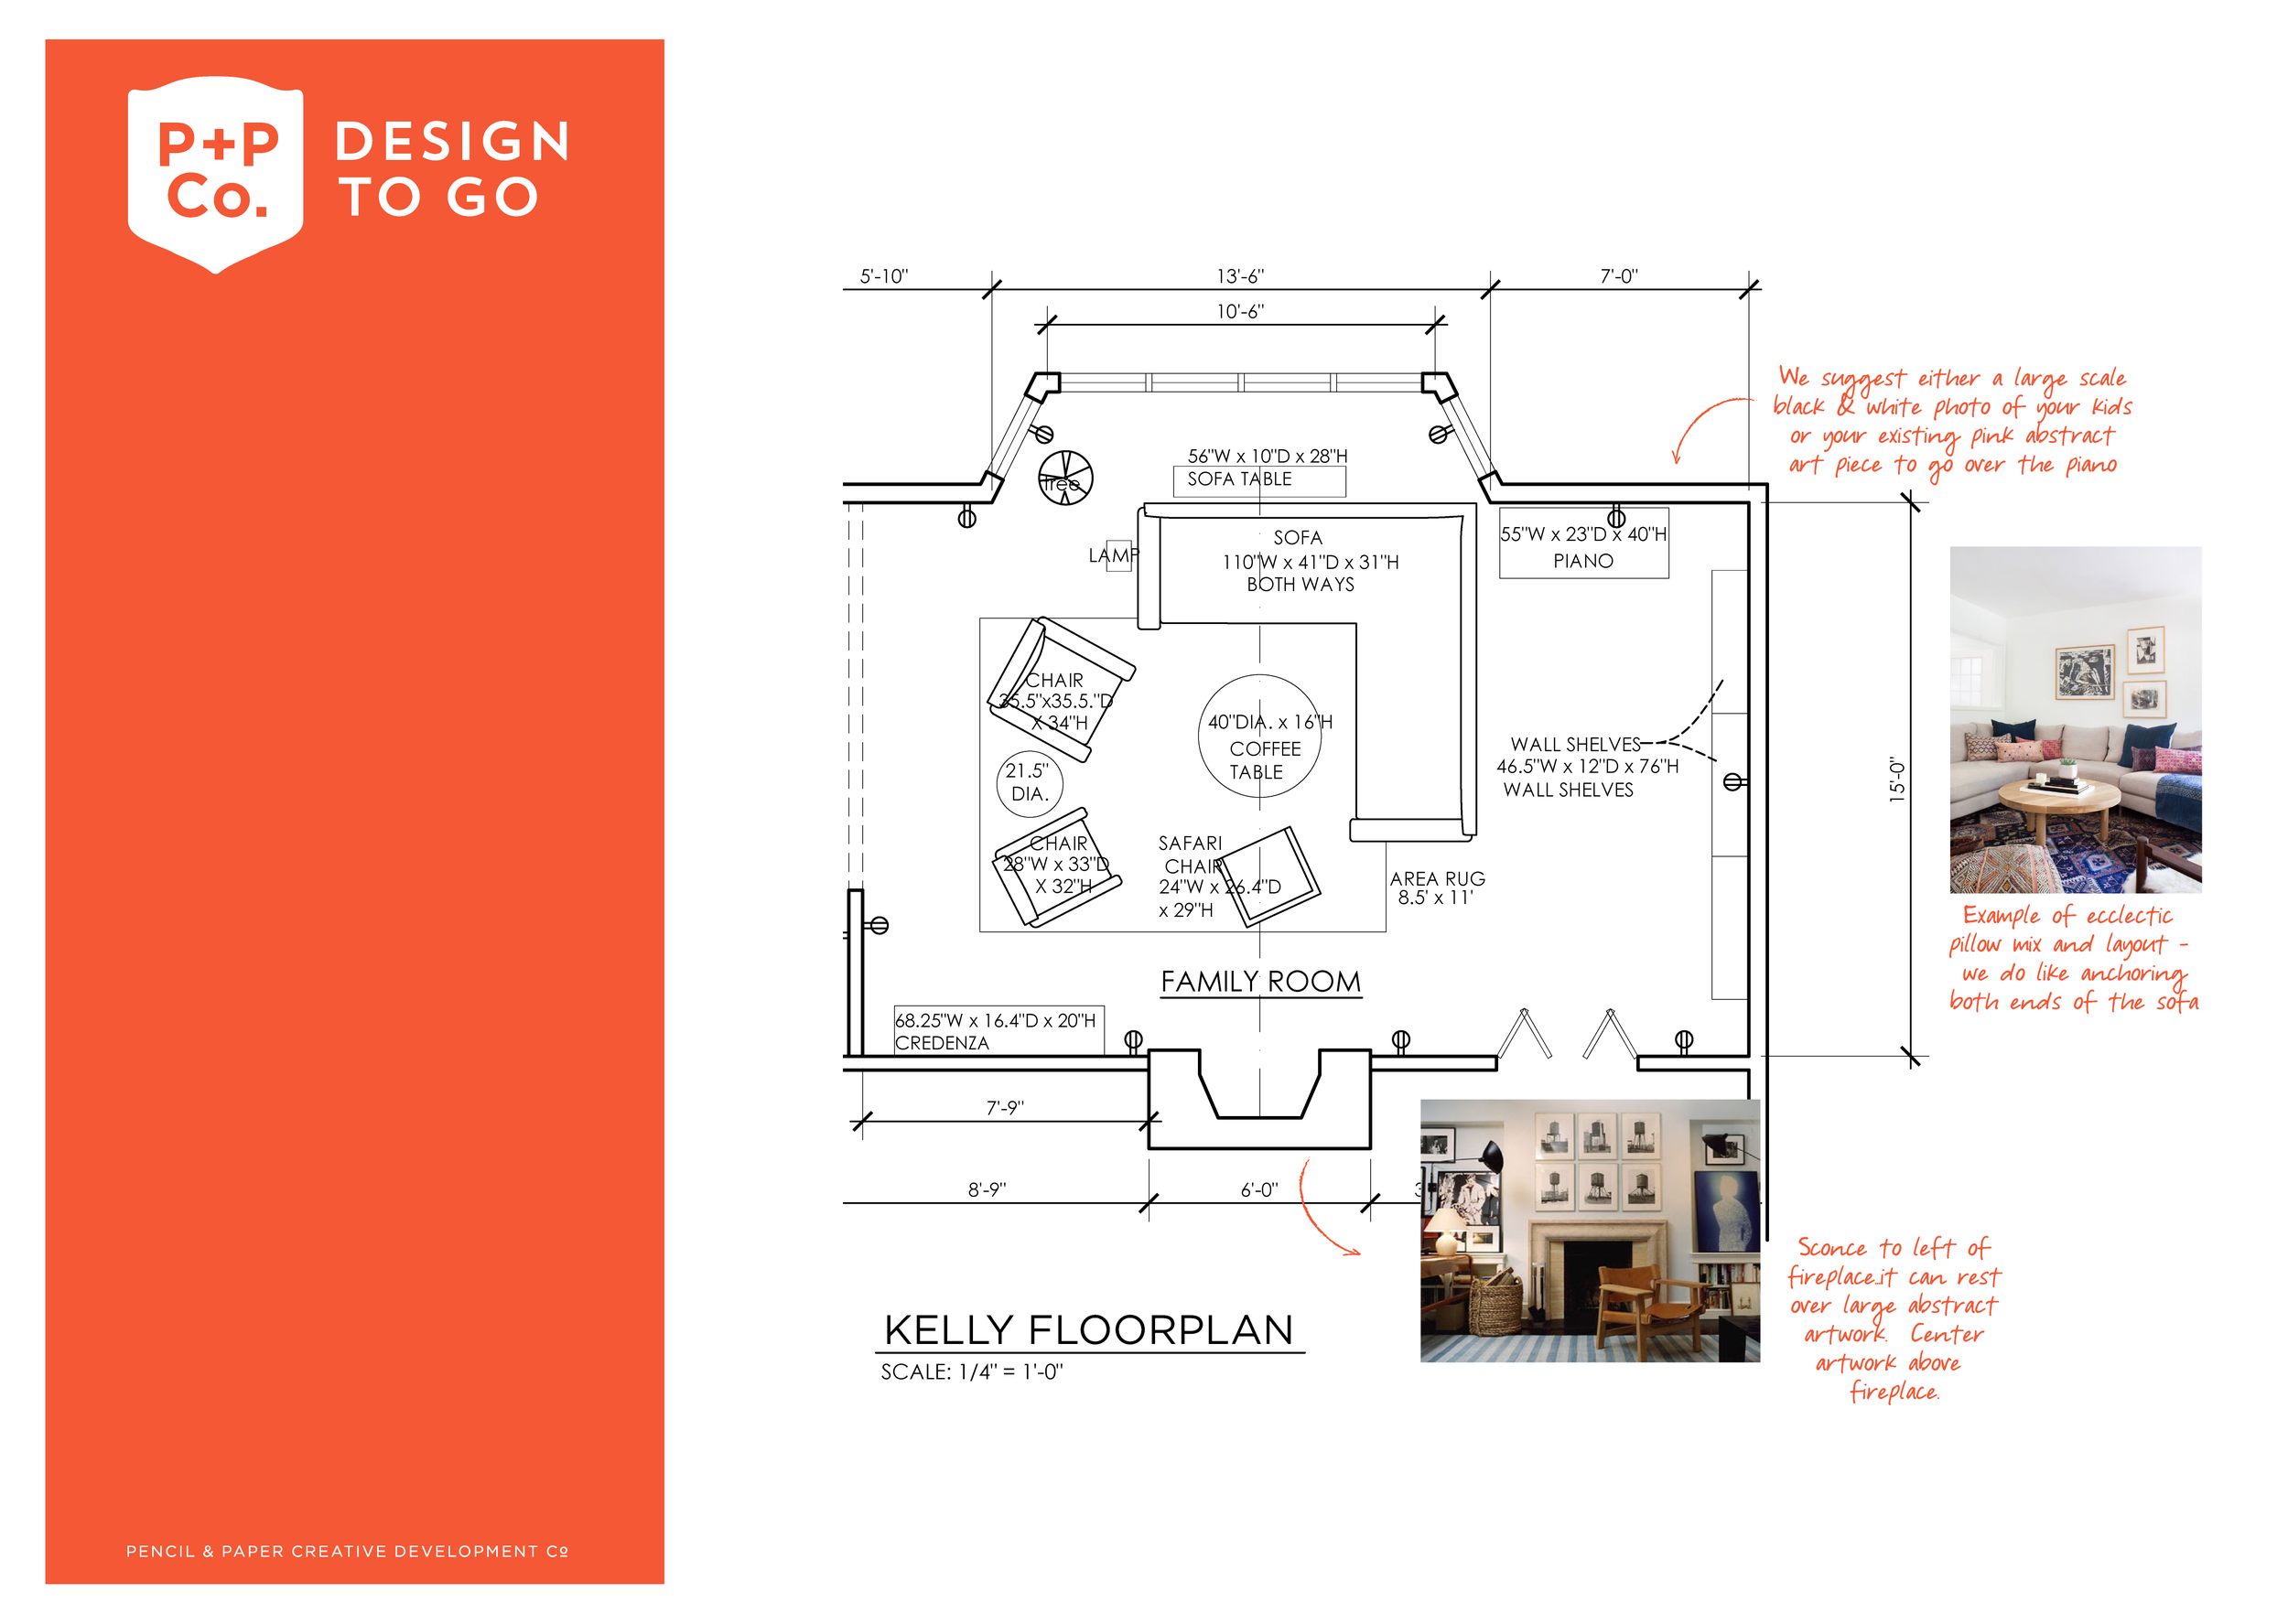 KELLY FLOORPLAN DTG-01